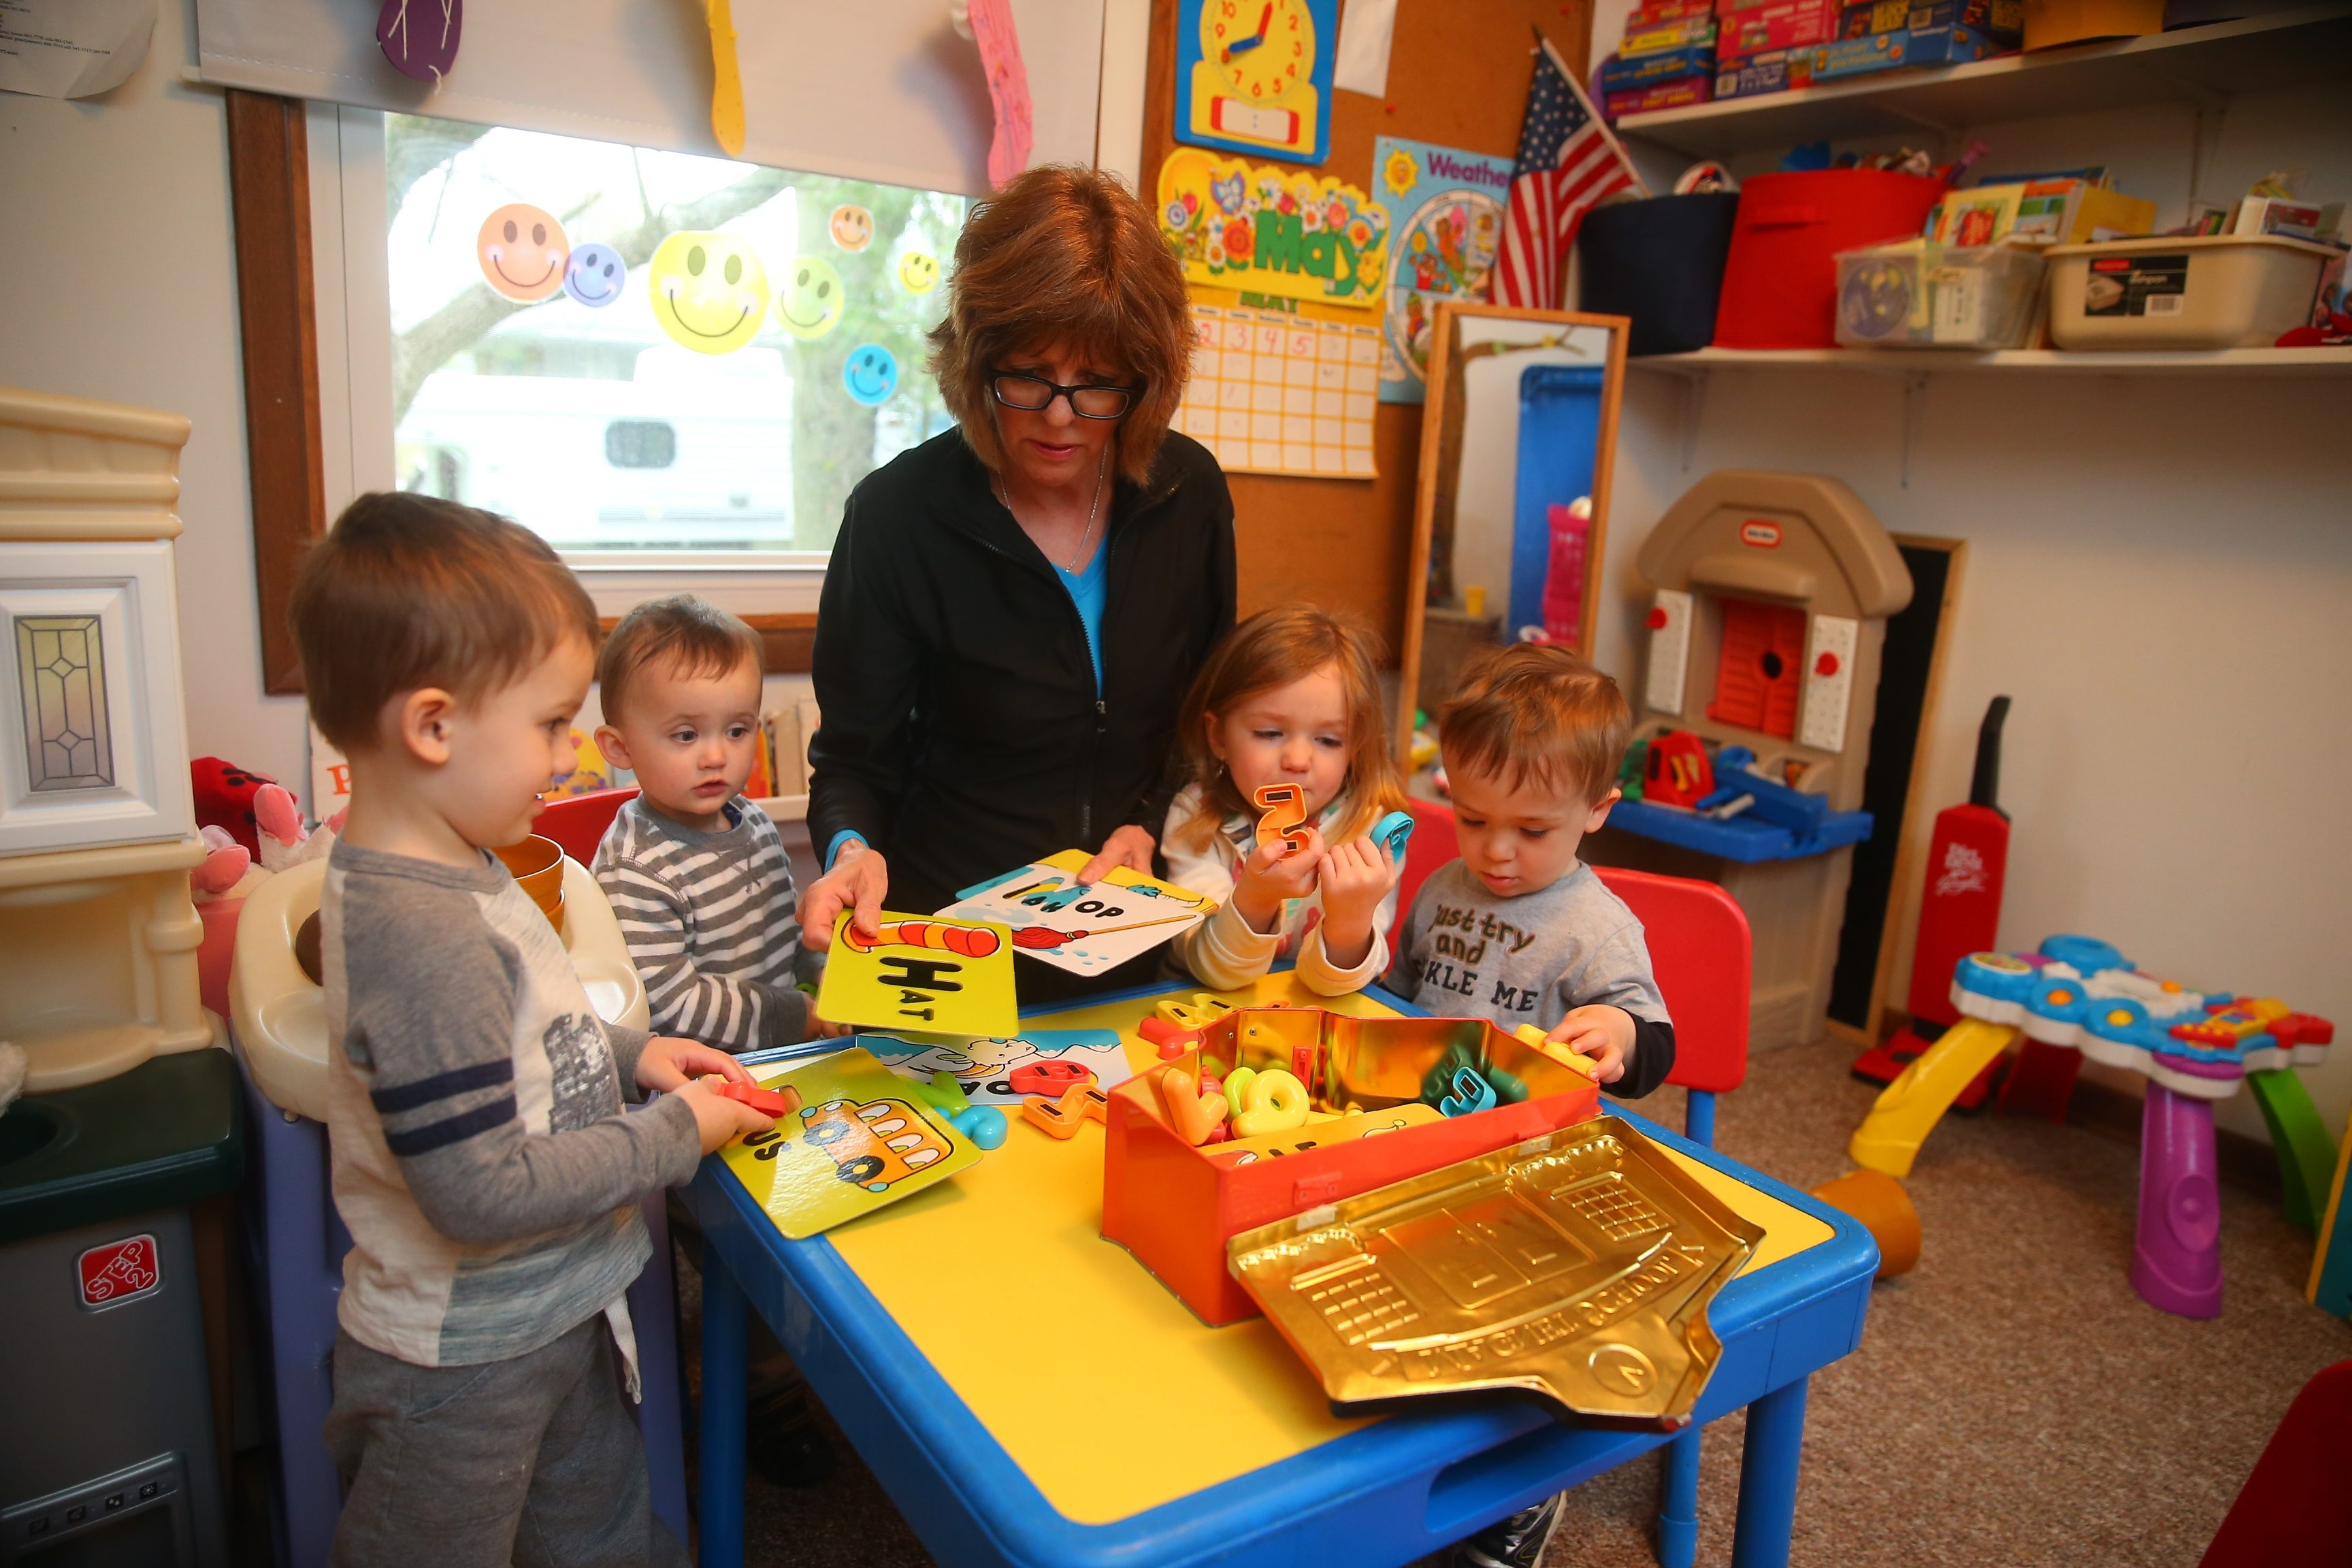 Mary Hausberger with, from left, Dominic Irizarry, 3, Ryan Wisniewski, 1½, Riley Jubulis, 5, and Joseph Pirrone, 1½. Hausberger has been operating a day care center out of her house in West Seneca for more than 20 years.